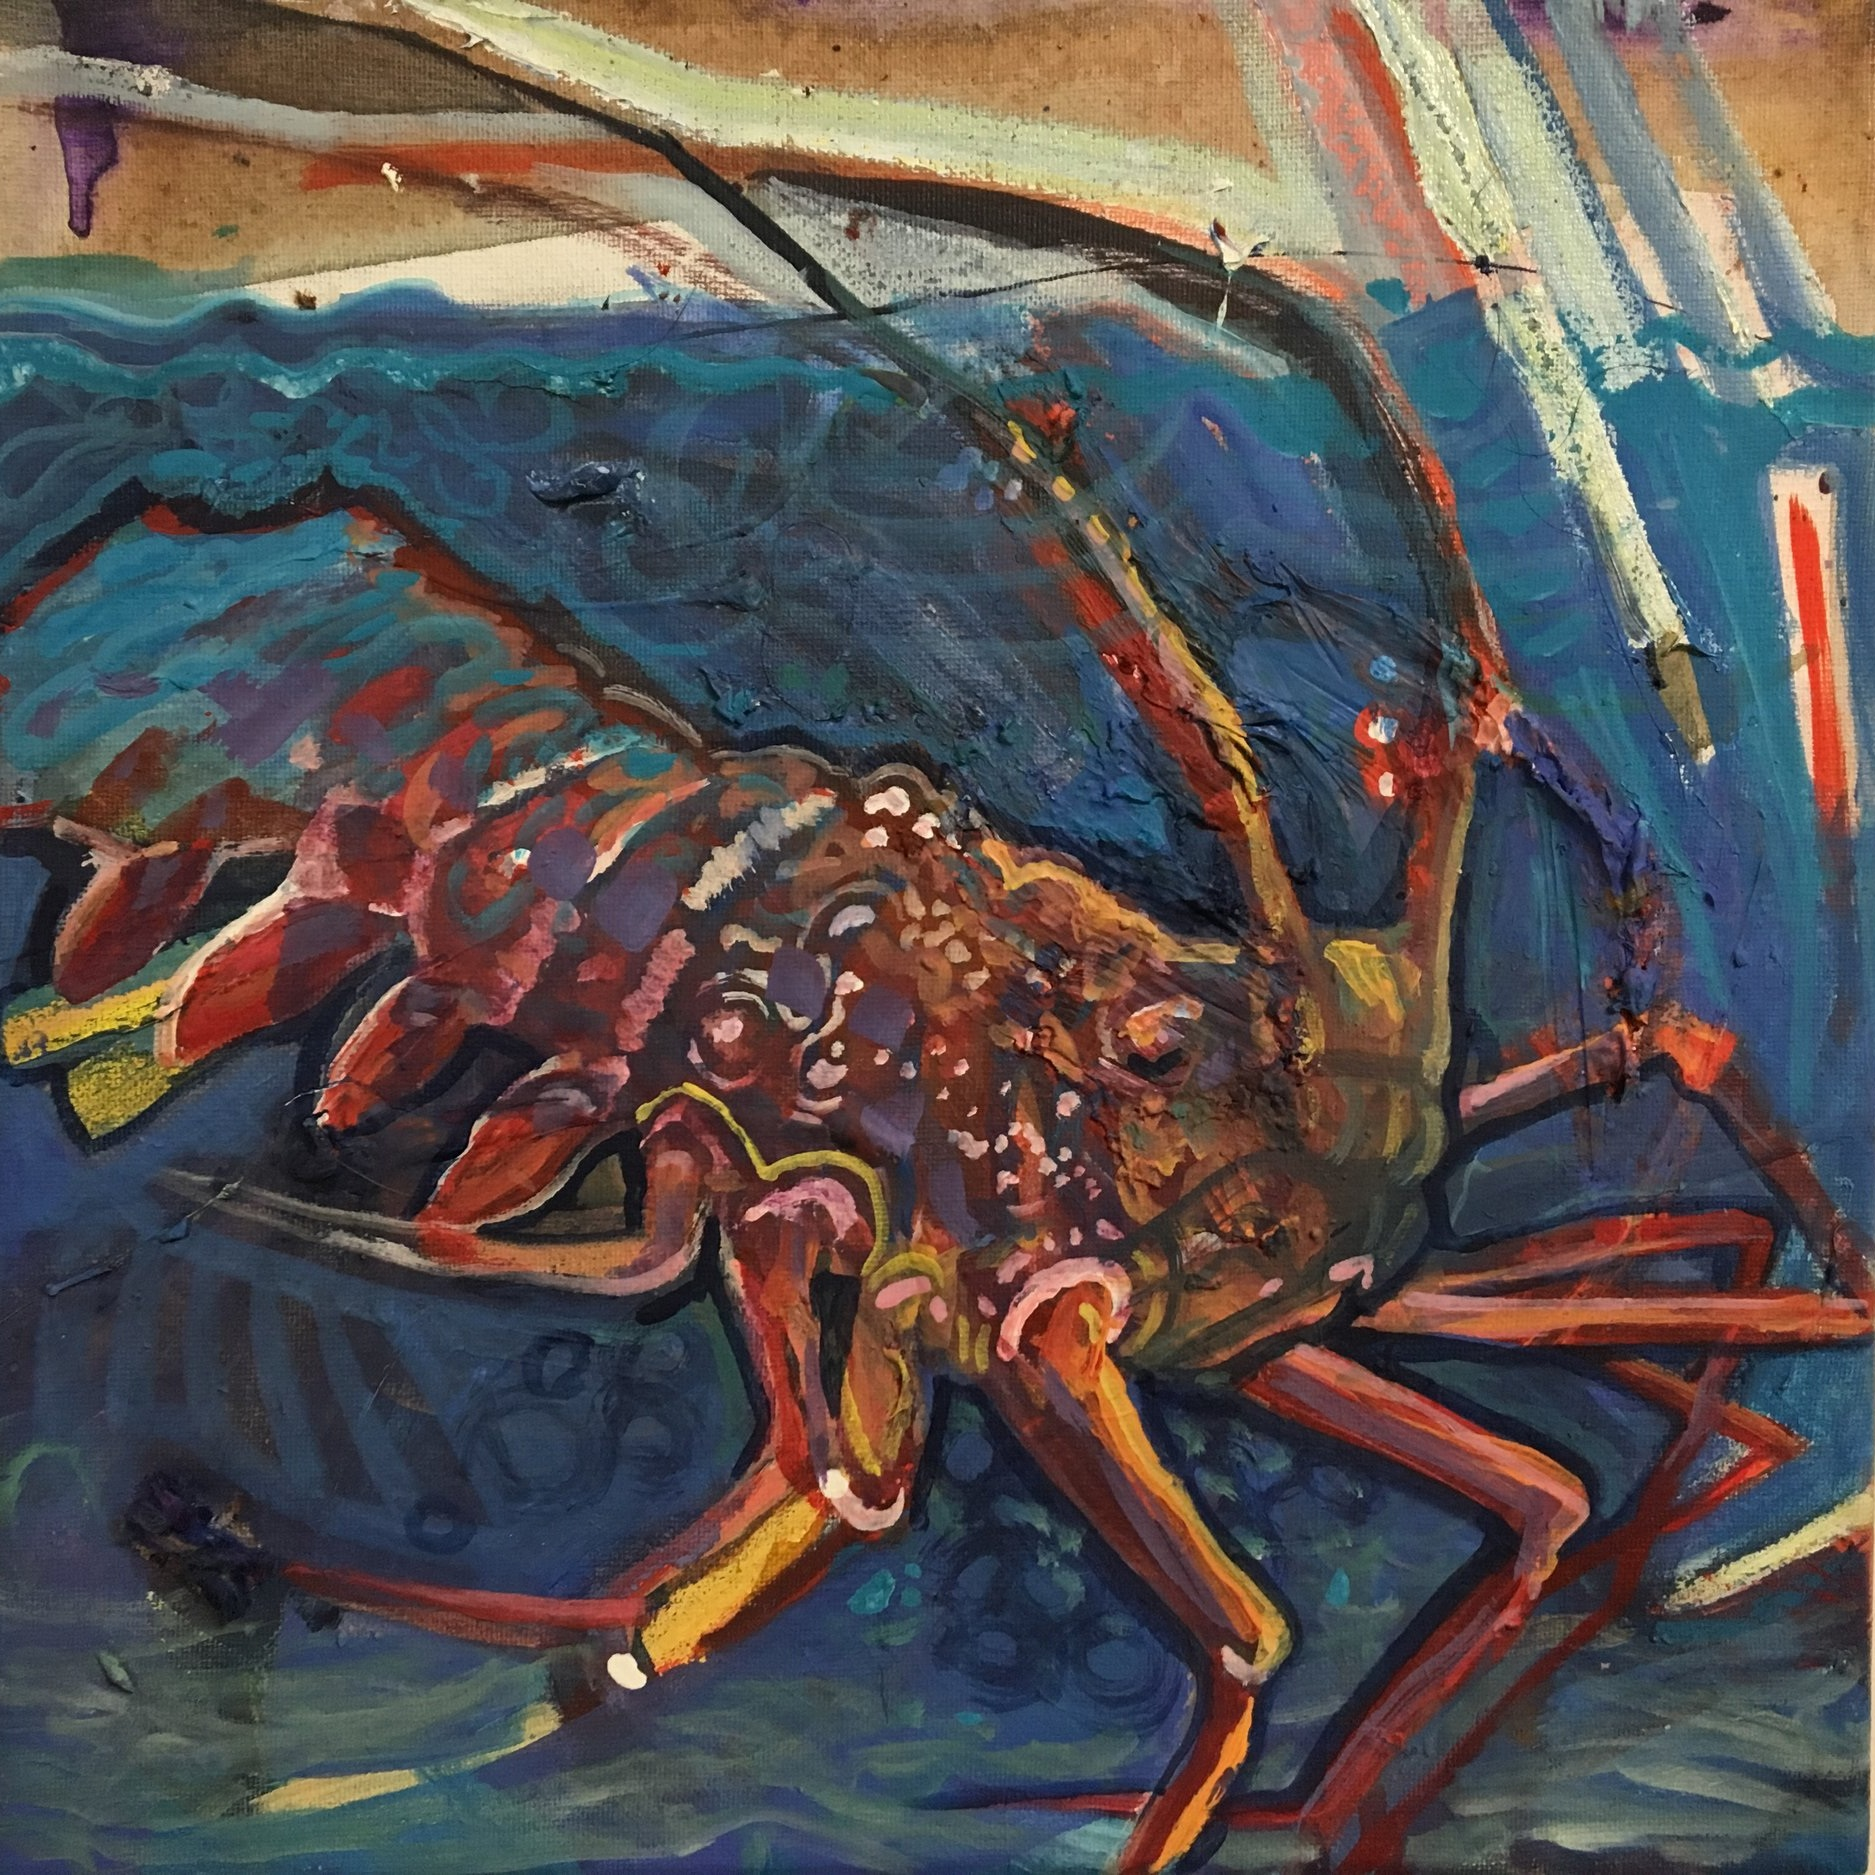 Spiny+Lobster.jpg